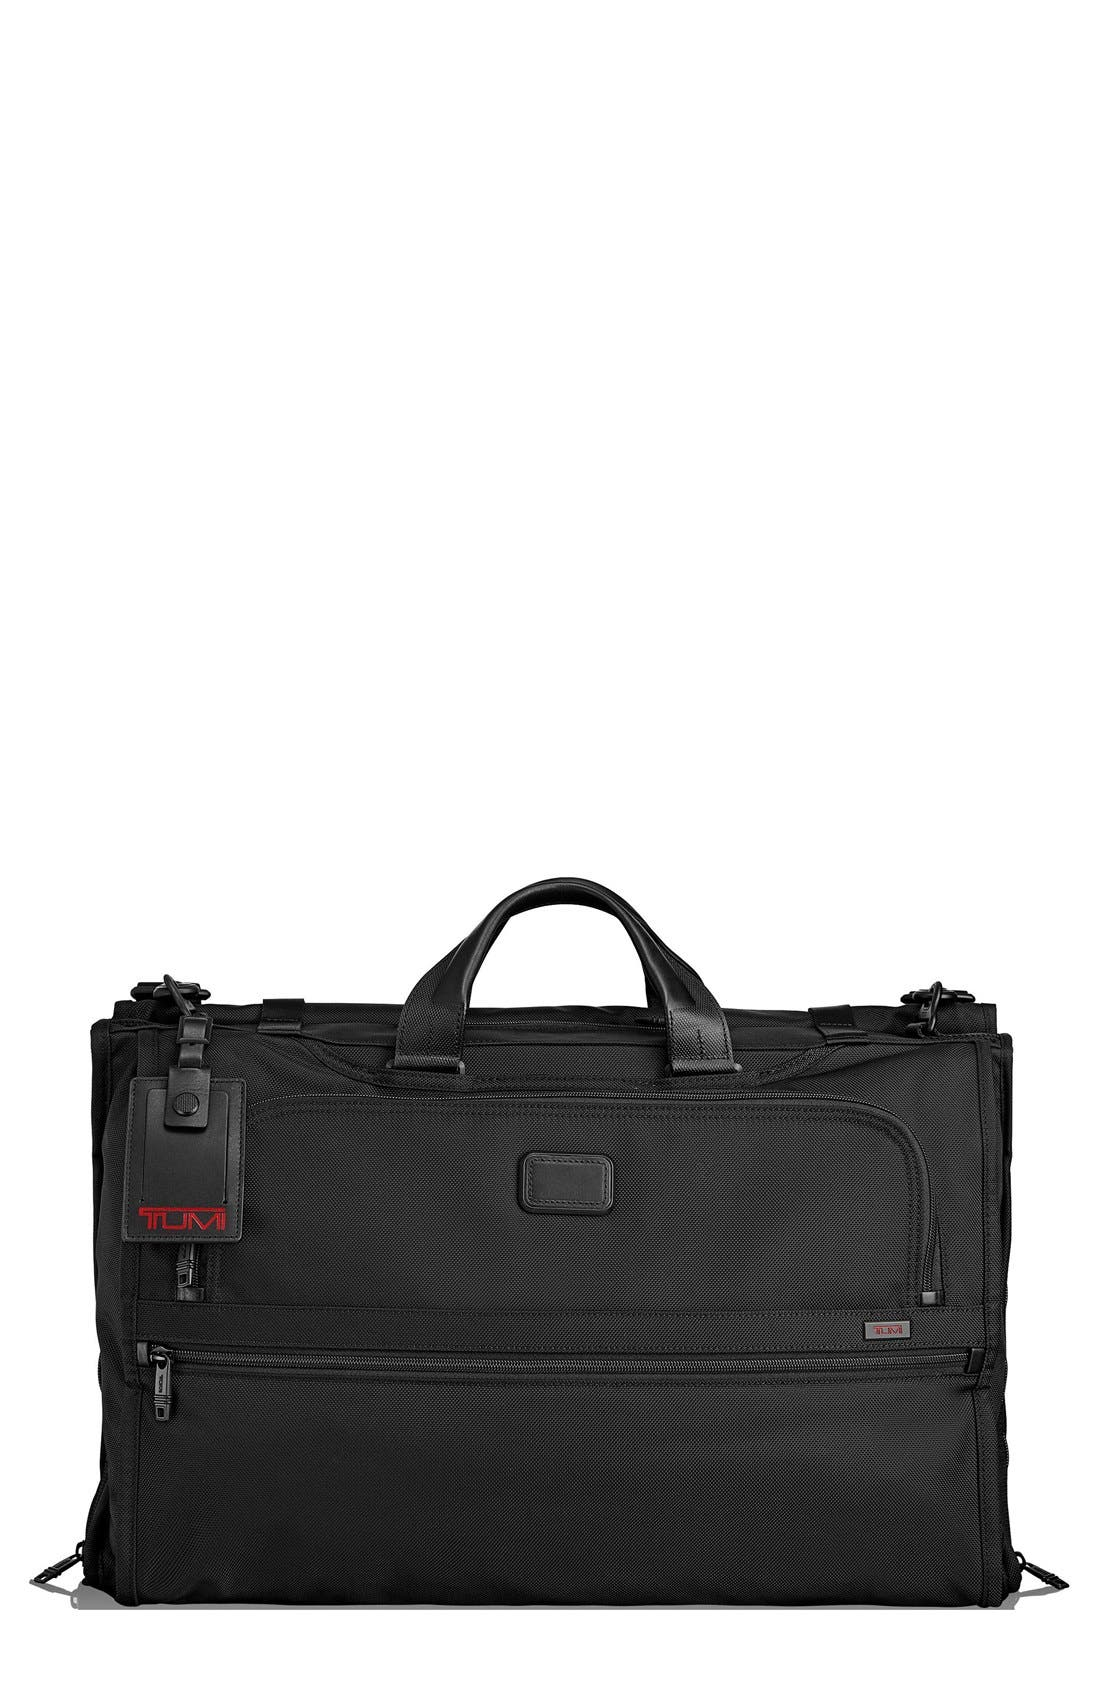 Alpha 2 22-Inch Trifold Carry-On Garment Bag,                         Main,                         color, Black